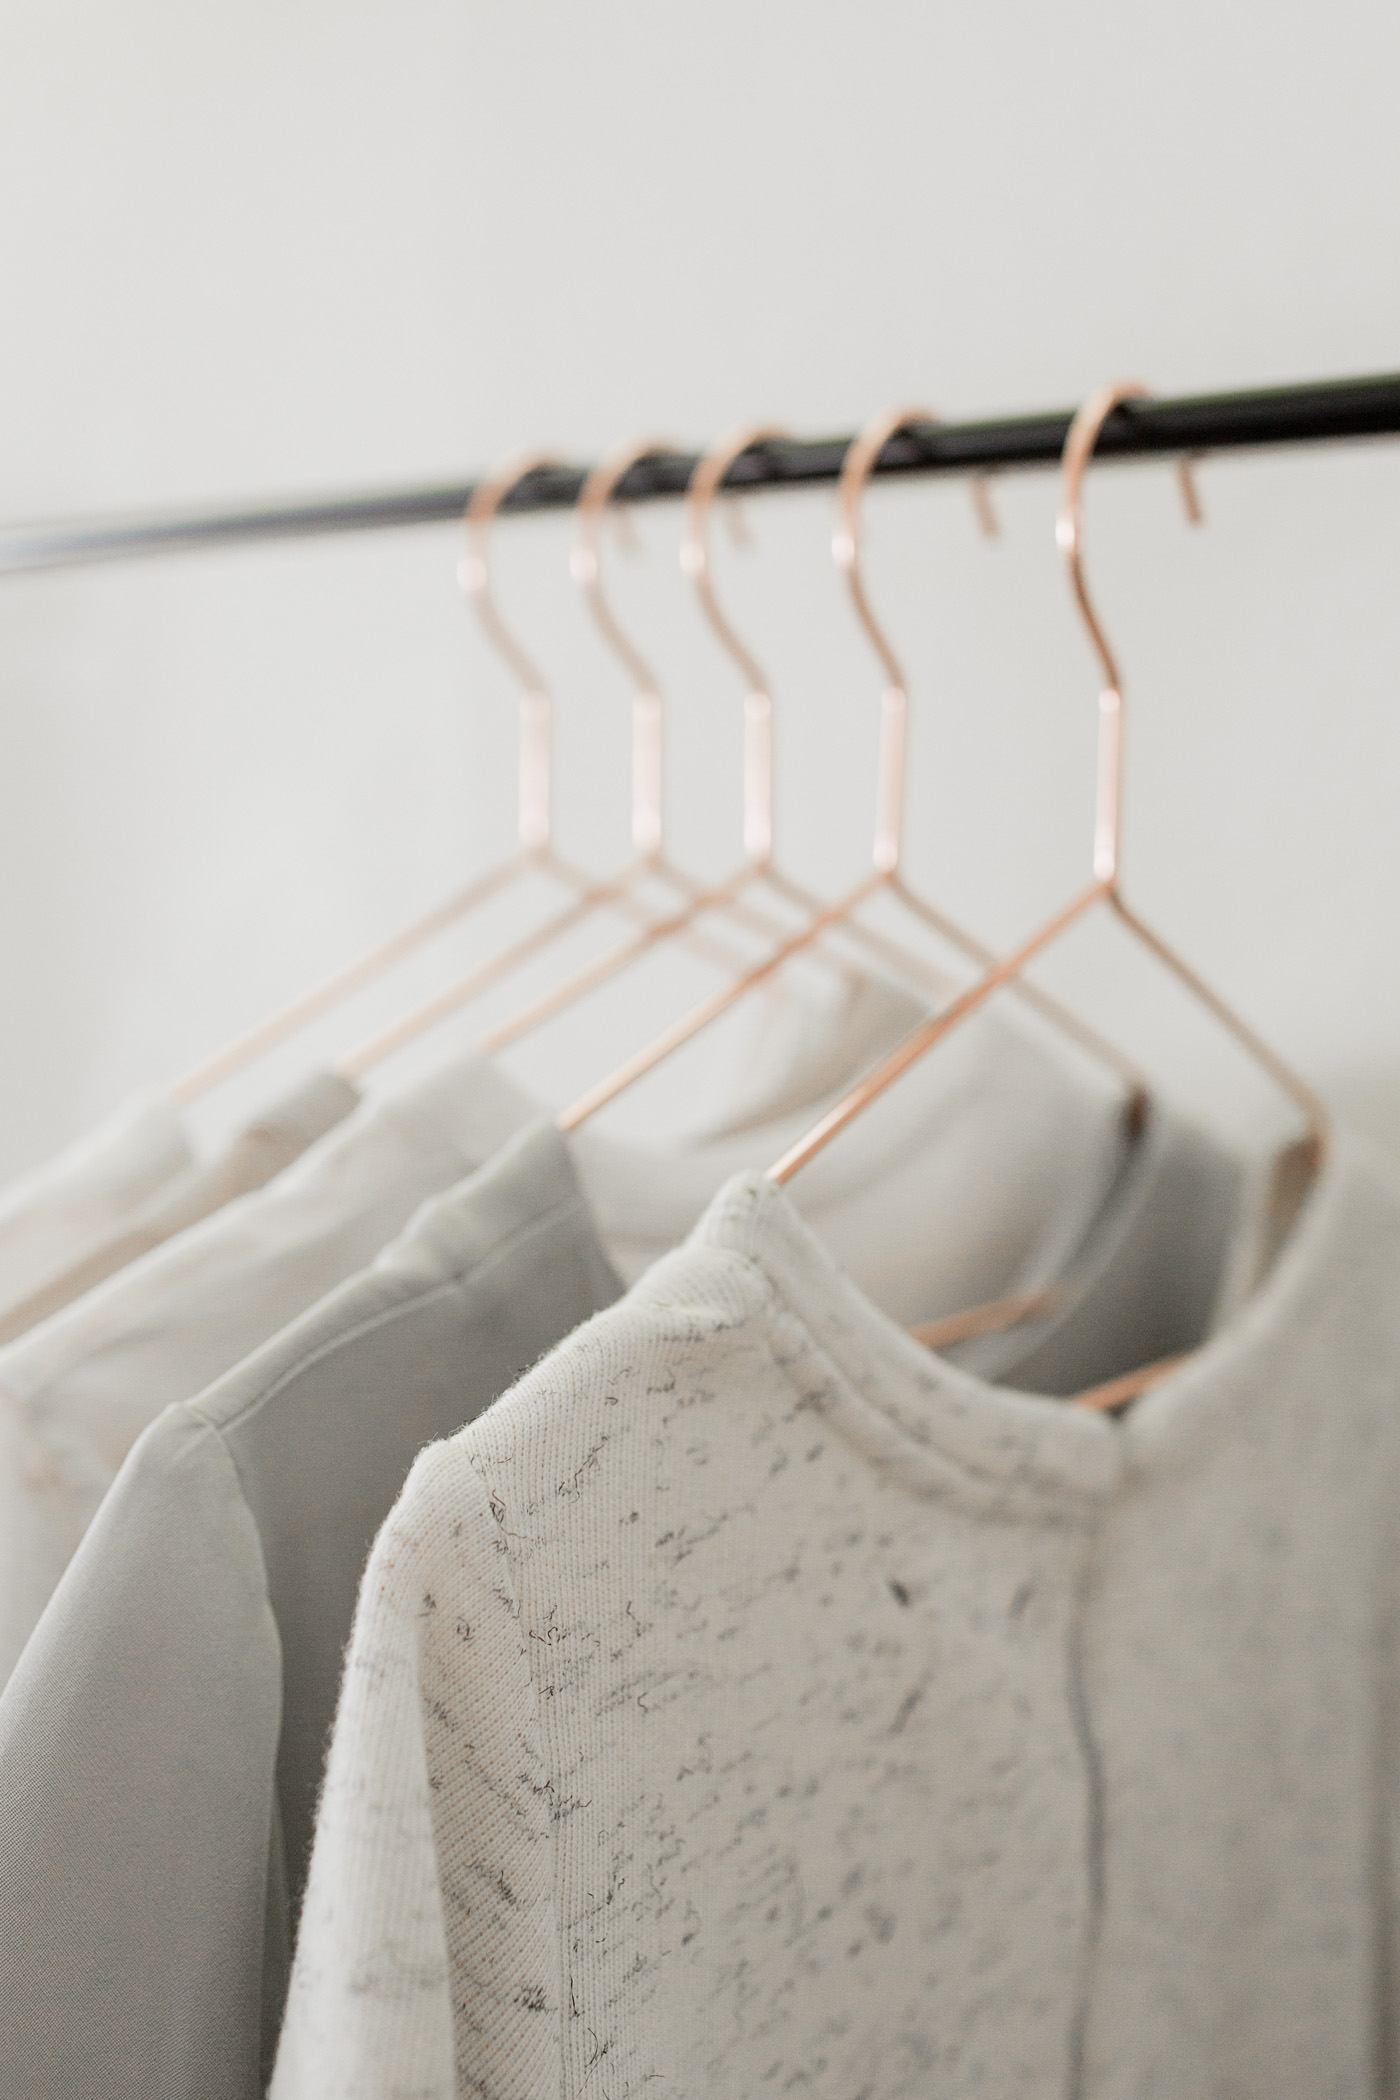 Maintaining your closet, tips & tricks to help your capsule wardrobe last longer.